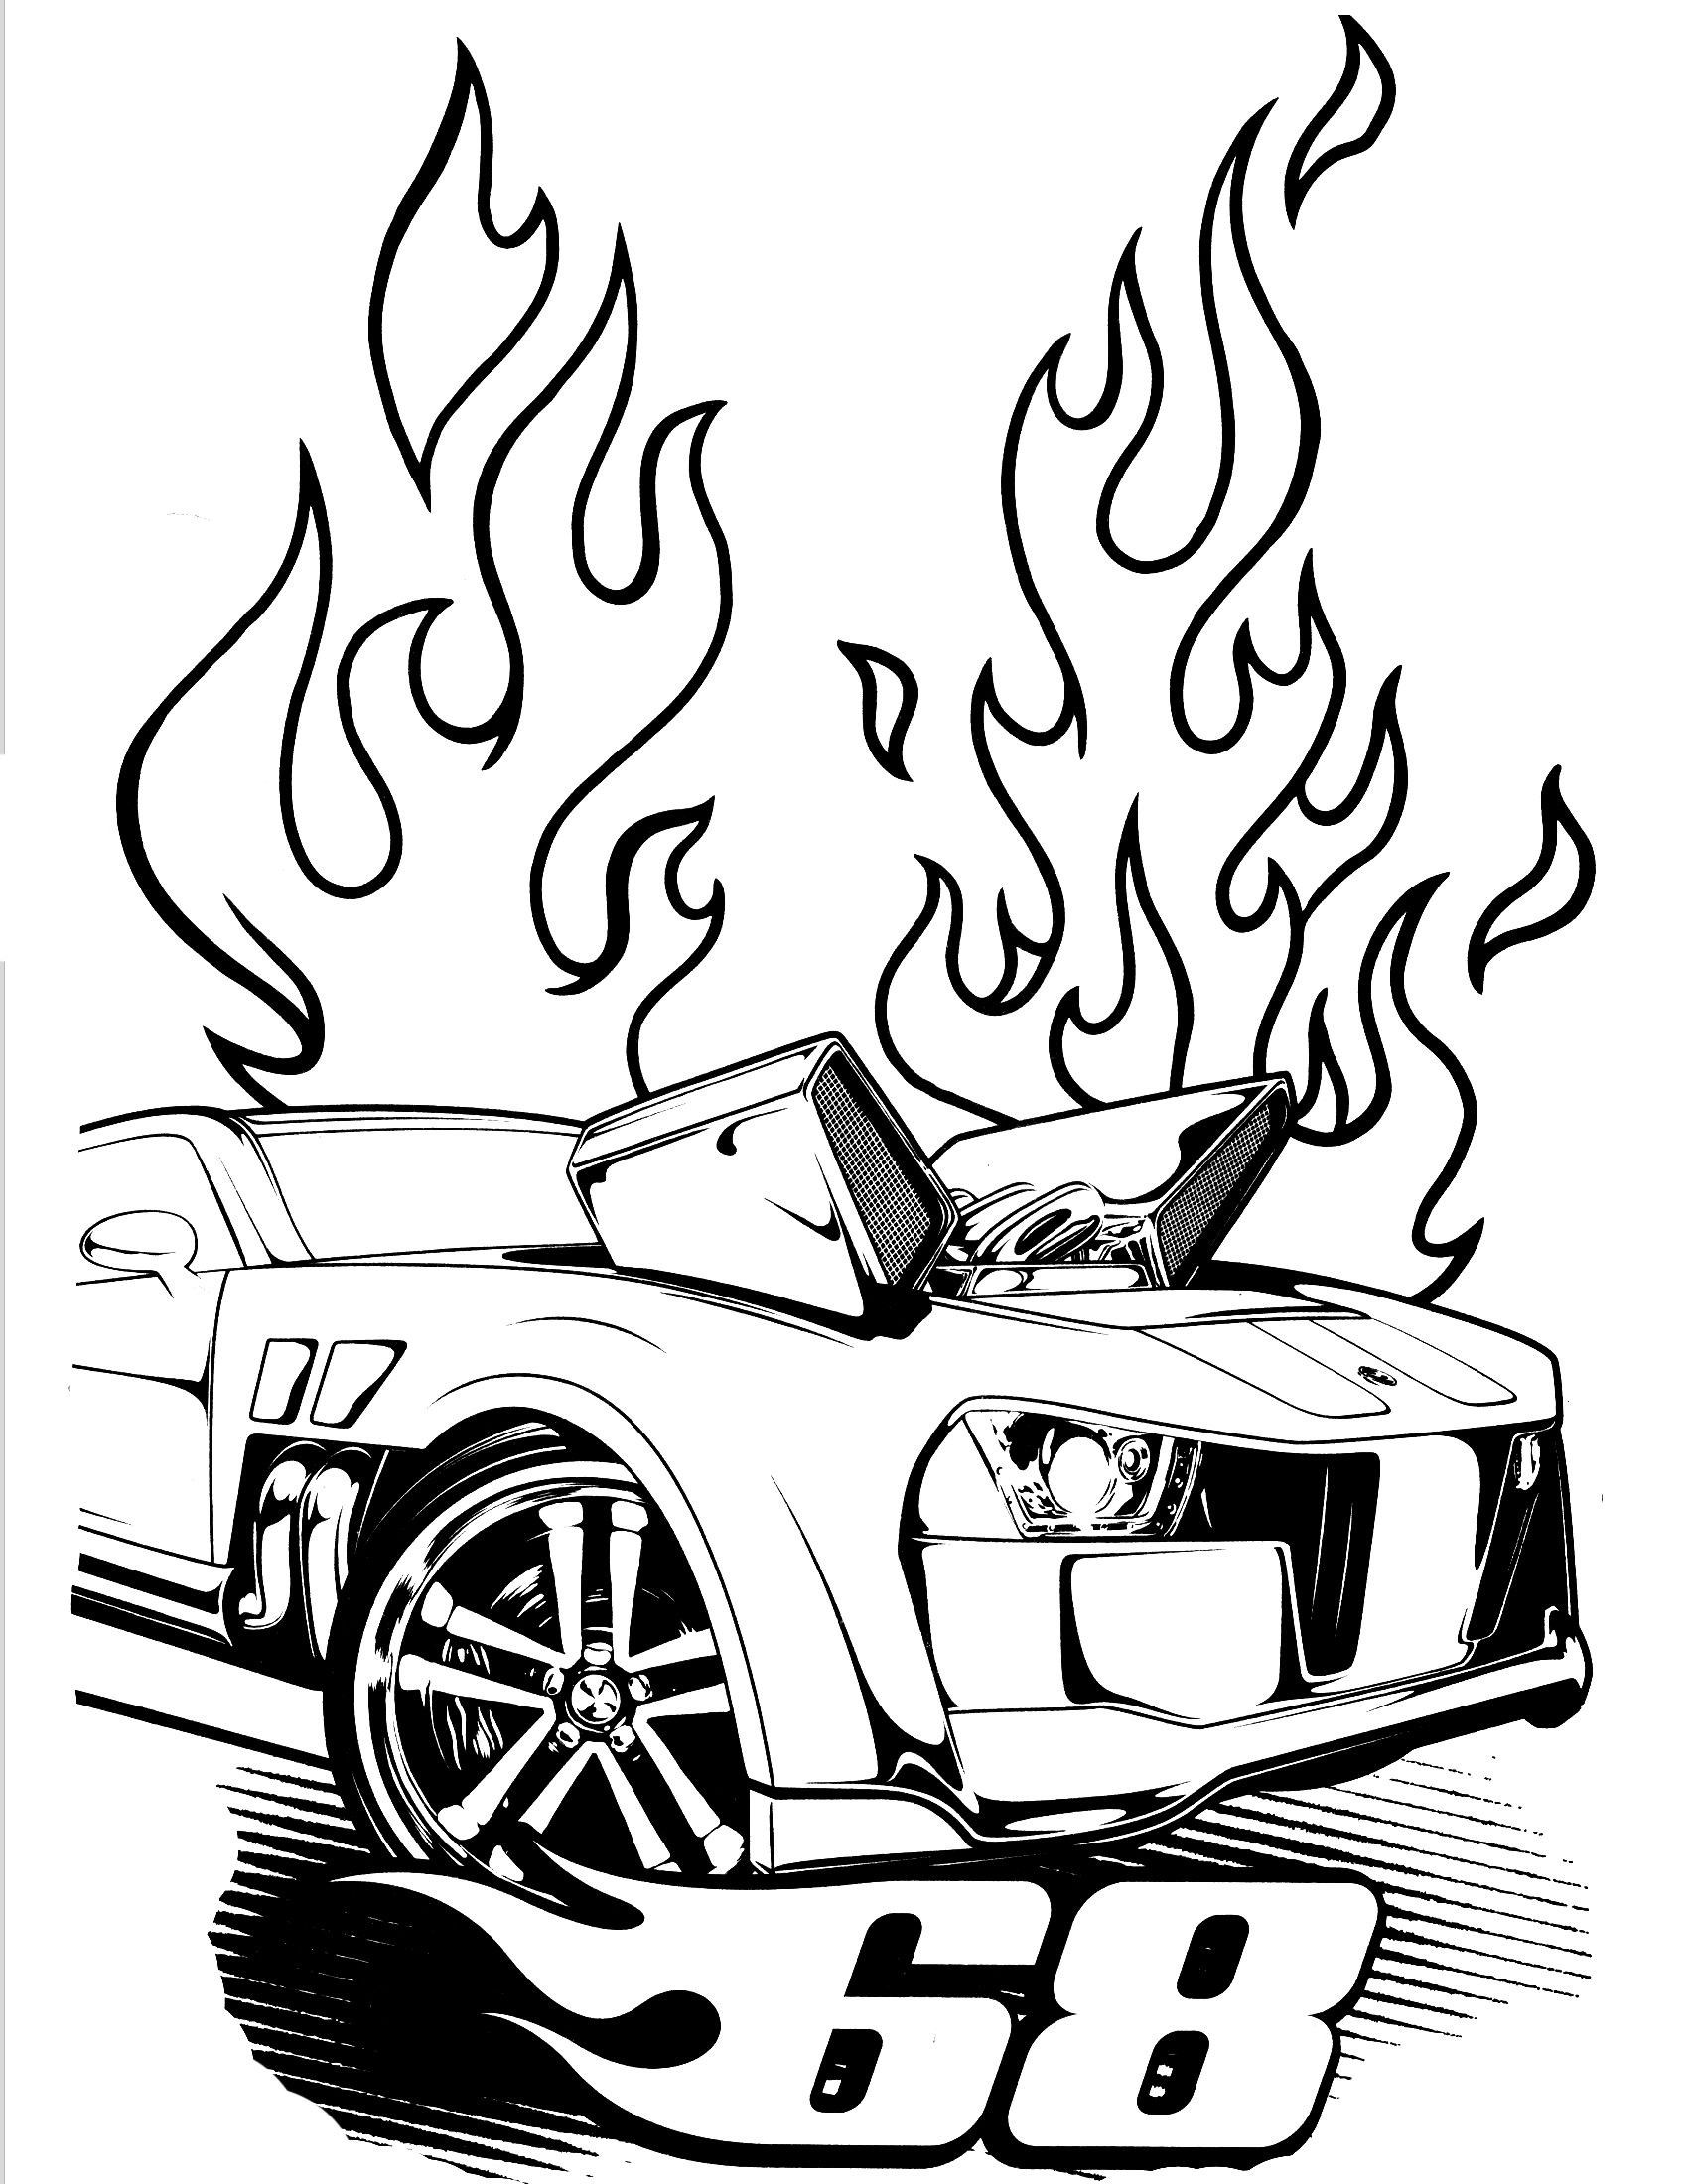 Die Besten Von Barbie Ausmalbilder Ausmalbilder Barbie Mit Ken 18 Ausmalbilder Barbie Ko Cars Coloring Pages Truck Coloring Pages Monster Truck Coloring Pages